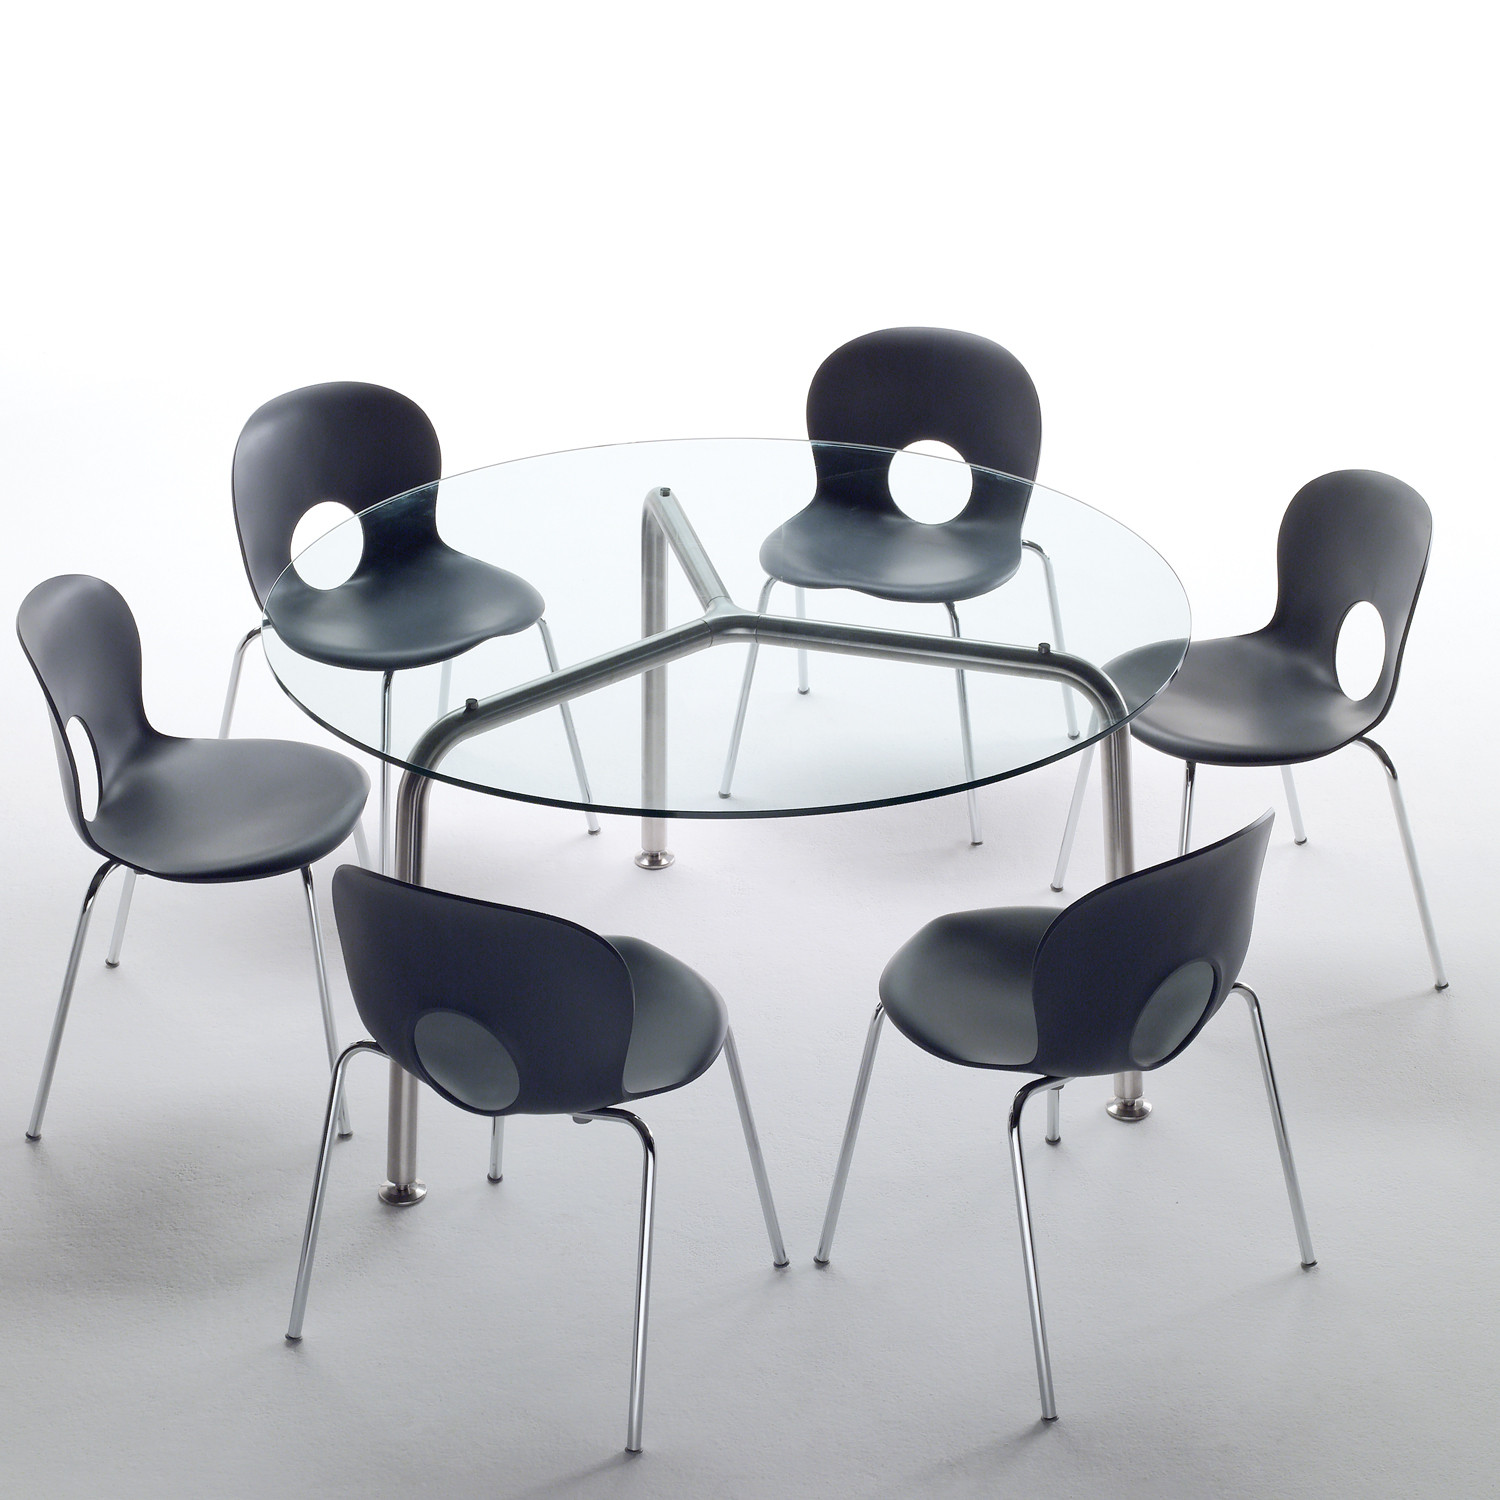 Convito Meeting Table by Rexite